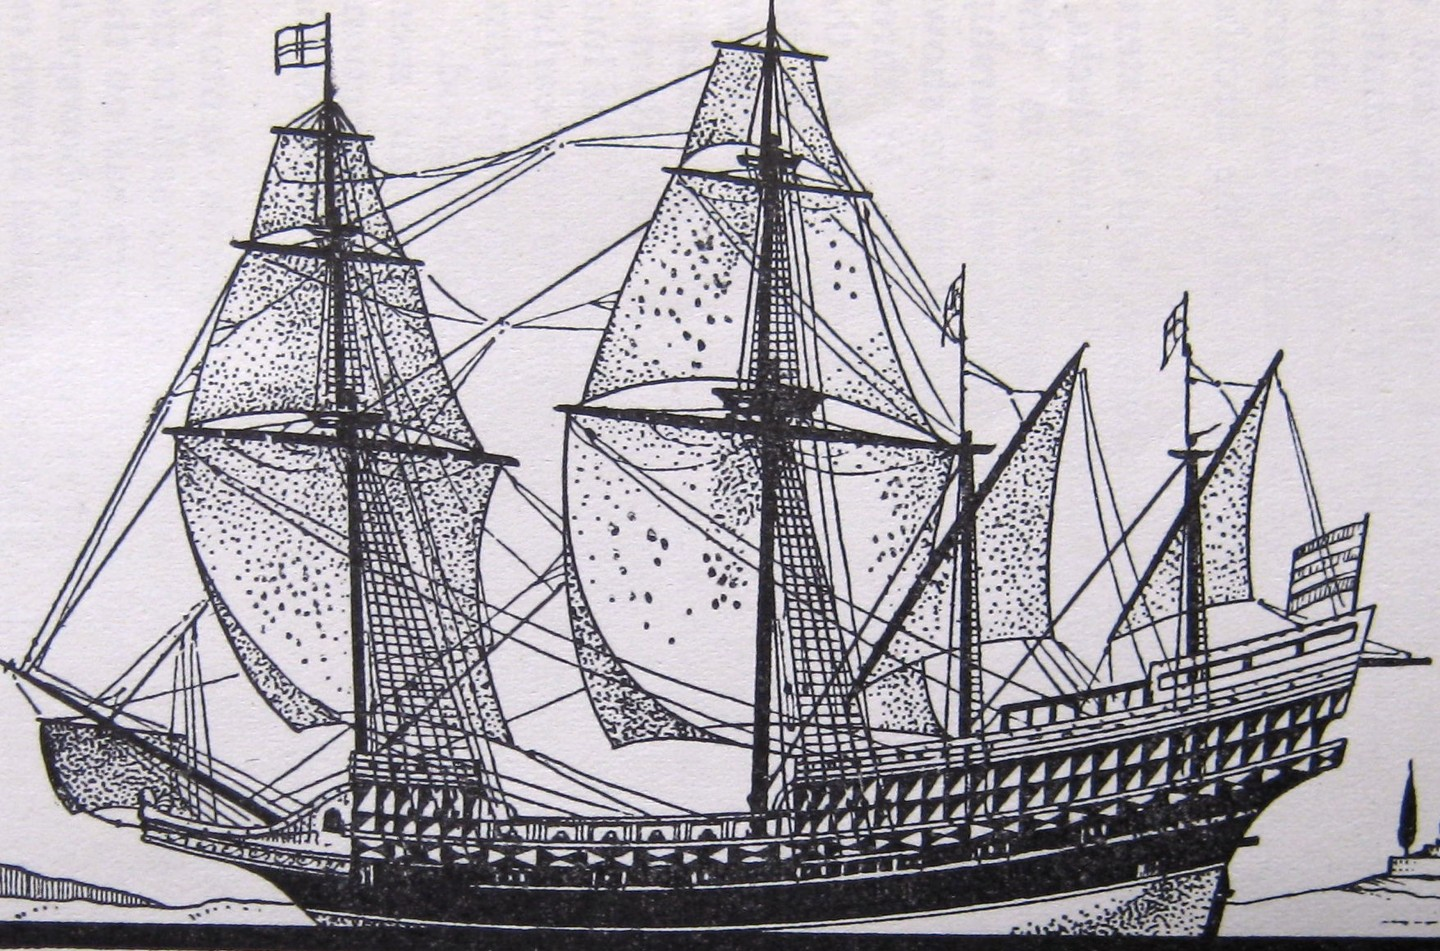 th-elizabethan-galleon-observer